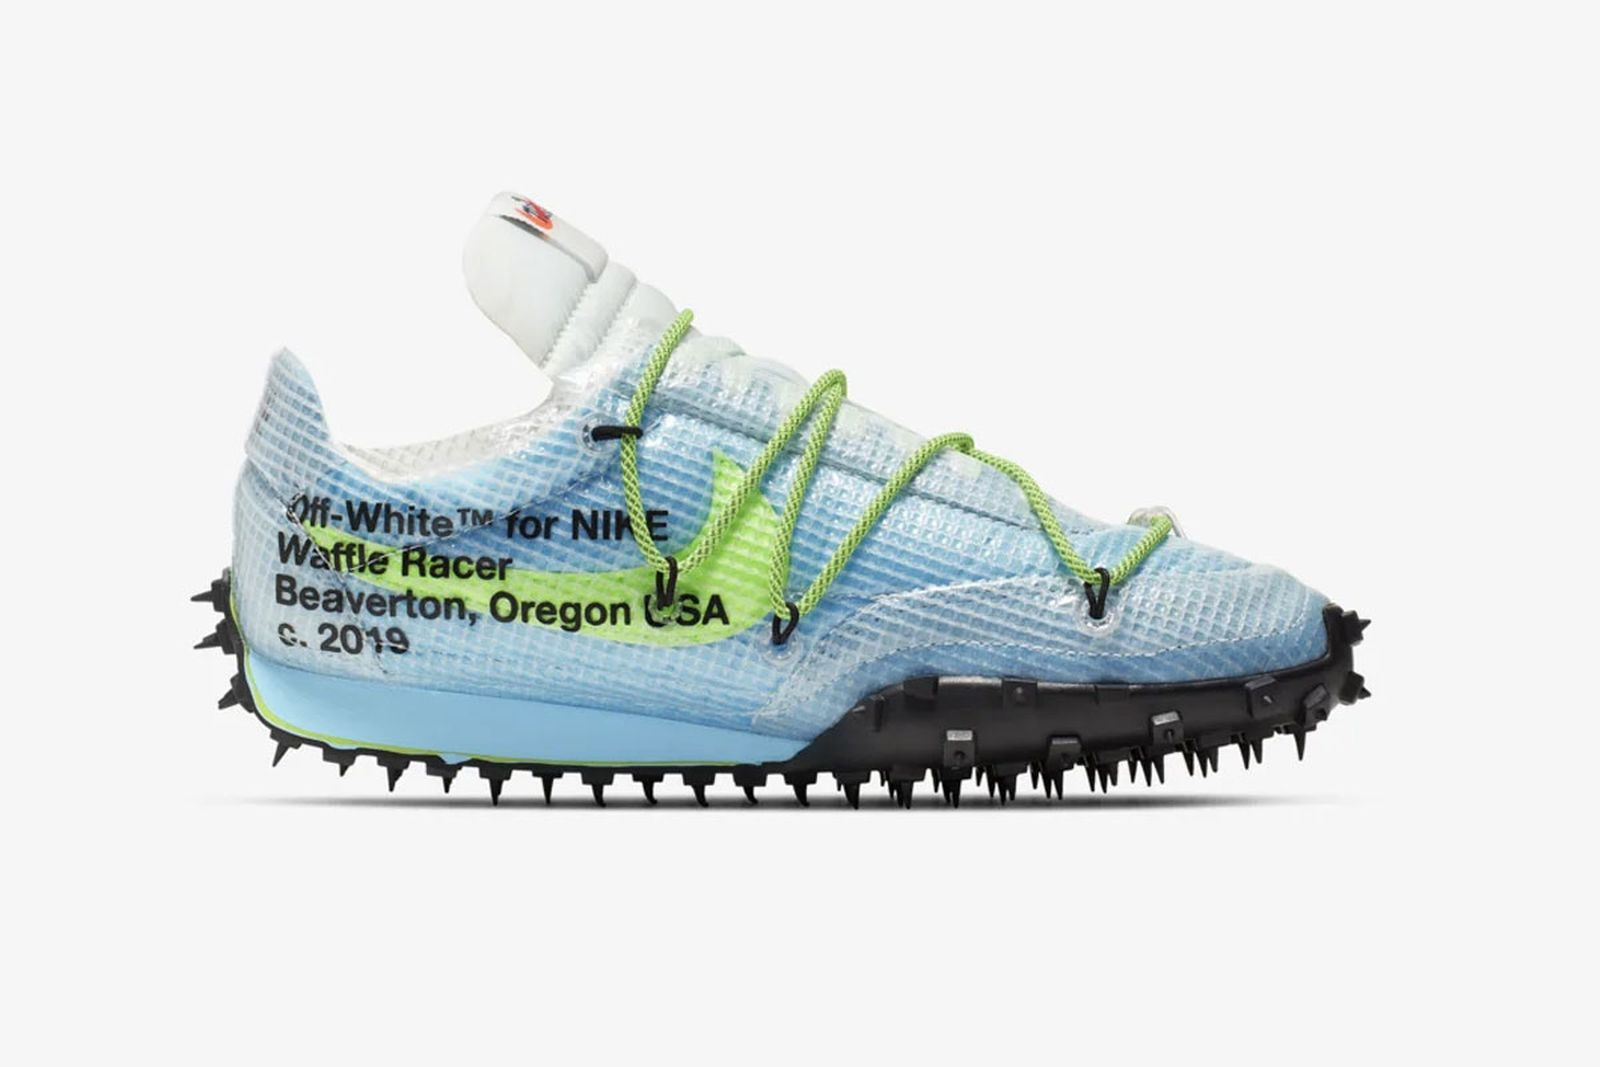 off-white-nike-waffle-racer-sp-release-date-price-02